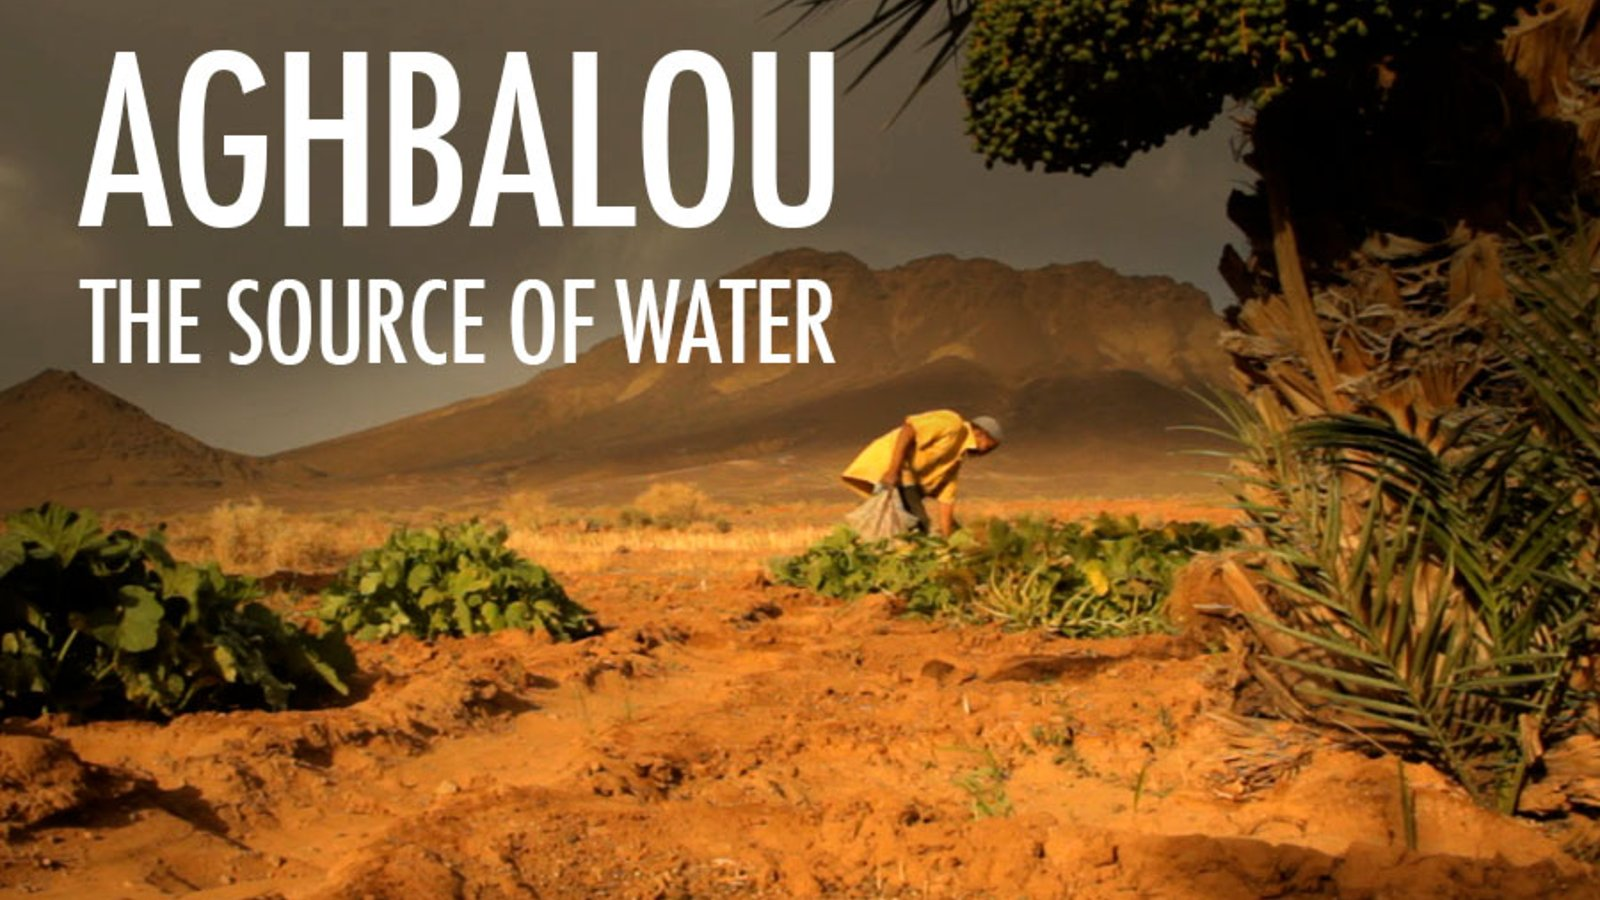 Aghbalou - The Source of Water